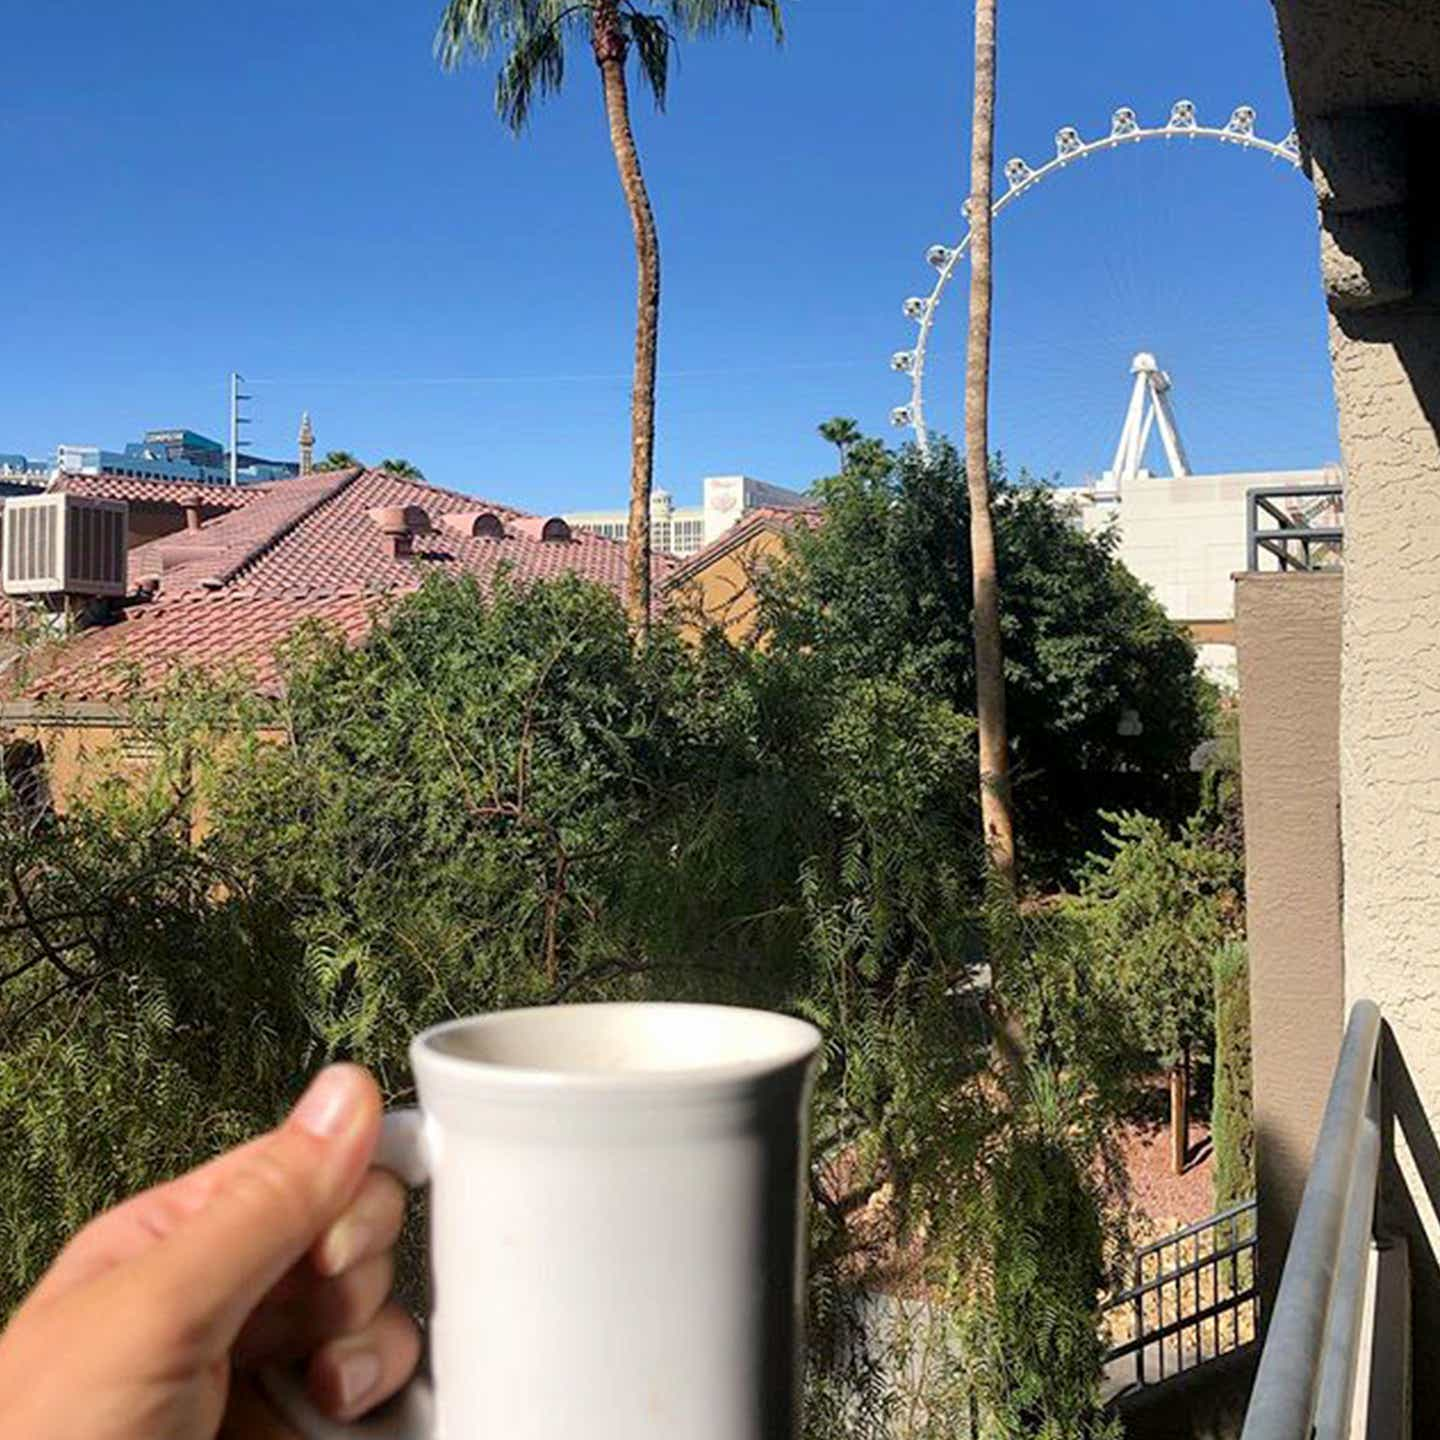 A guest holds a white coffee mug outside as a Ferris Wheel and palm trees are seen in front of a blue sky at our Desert Club Resort.